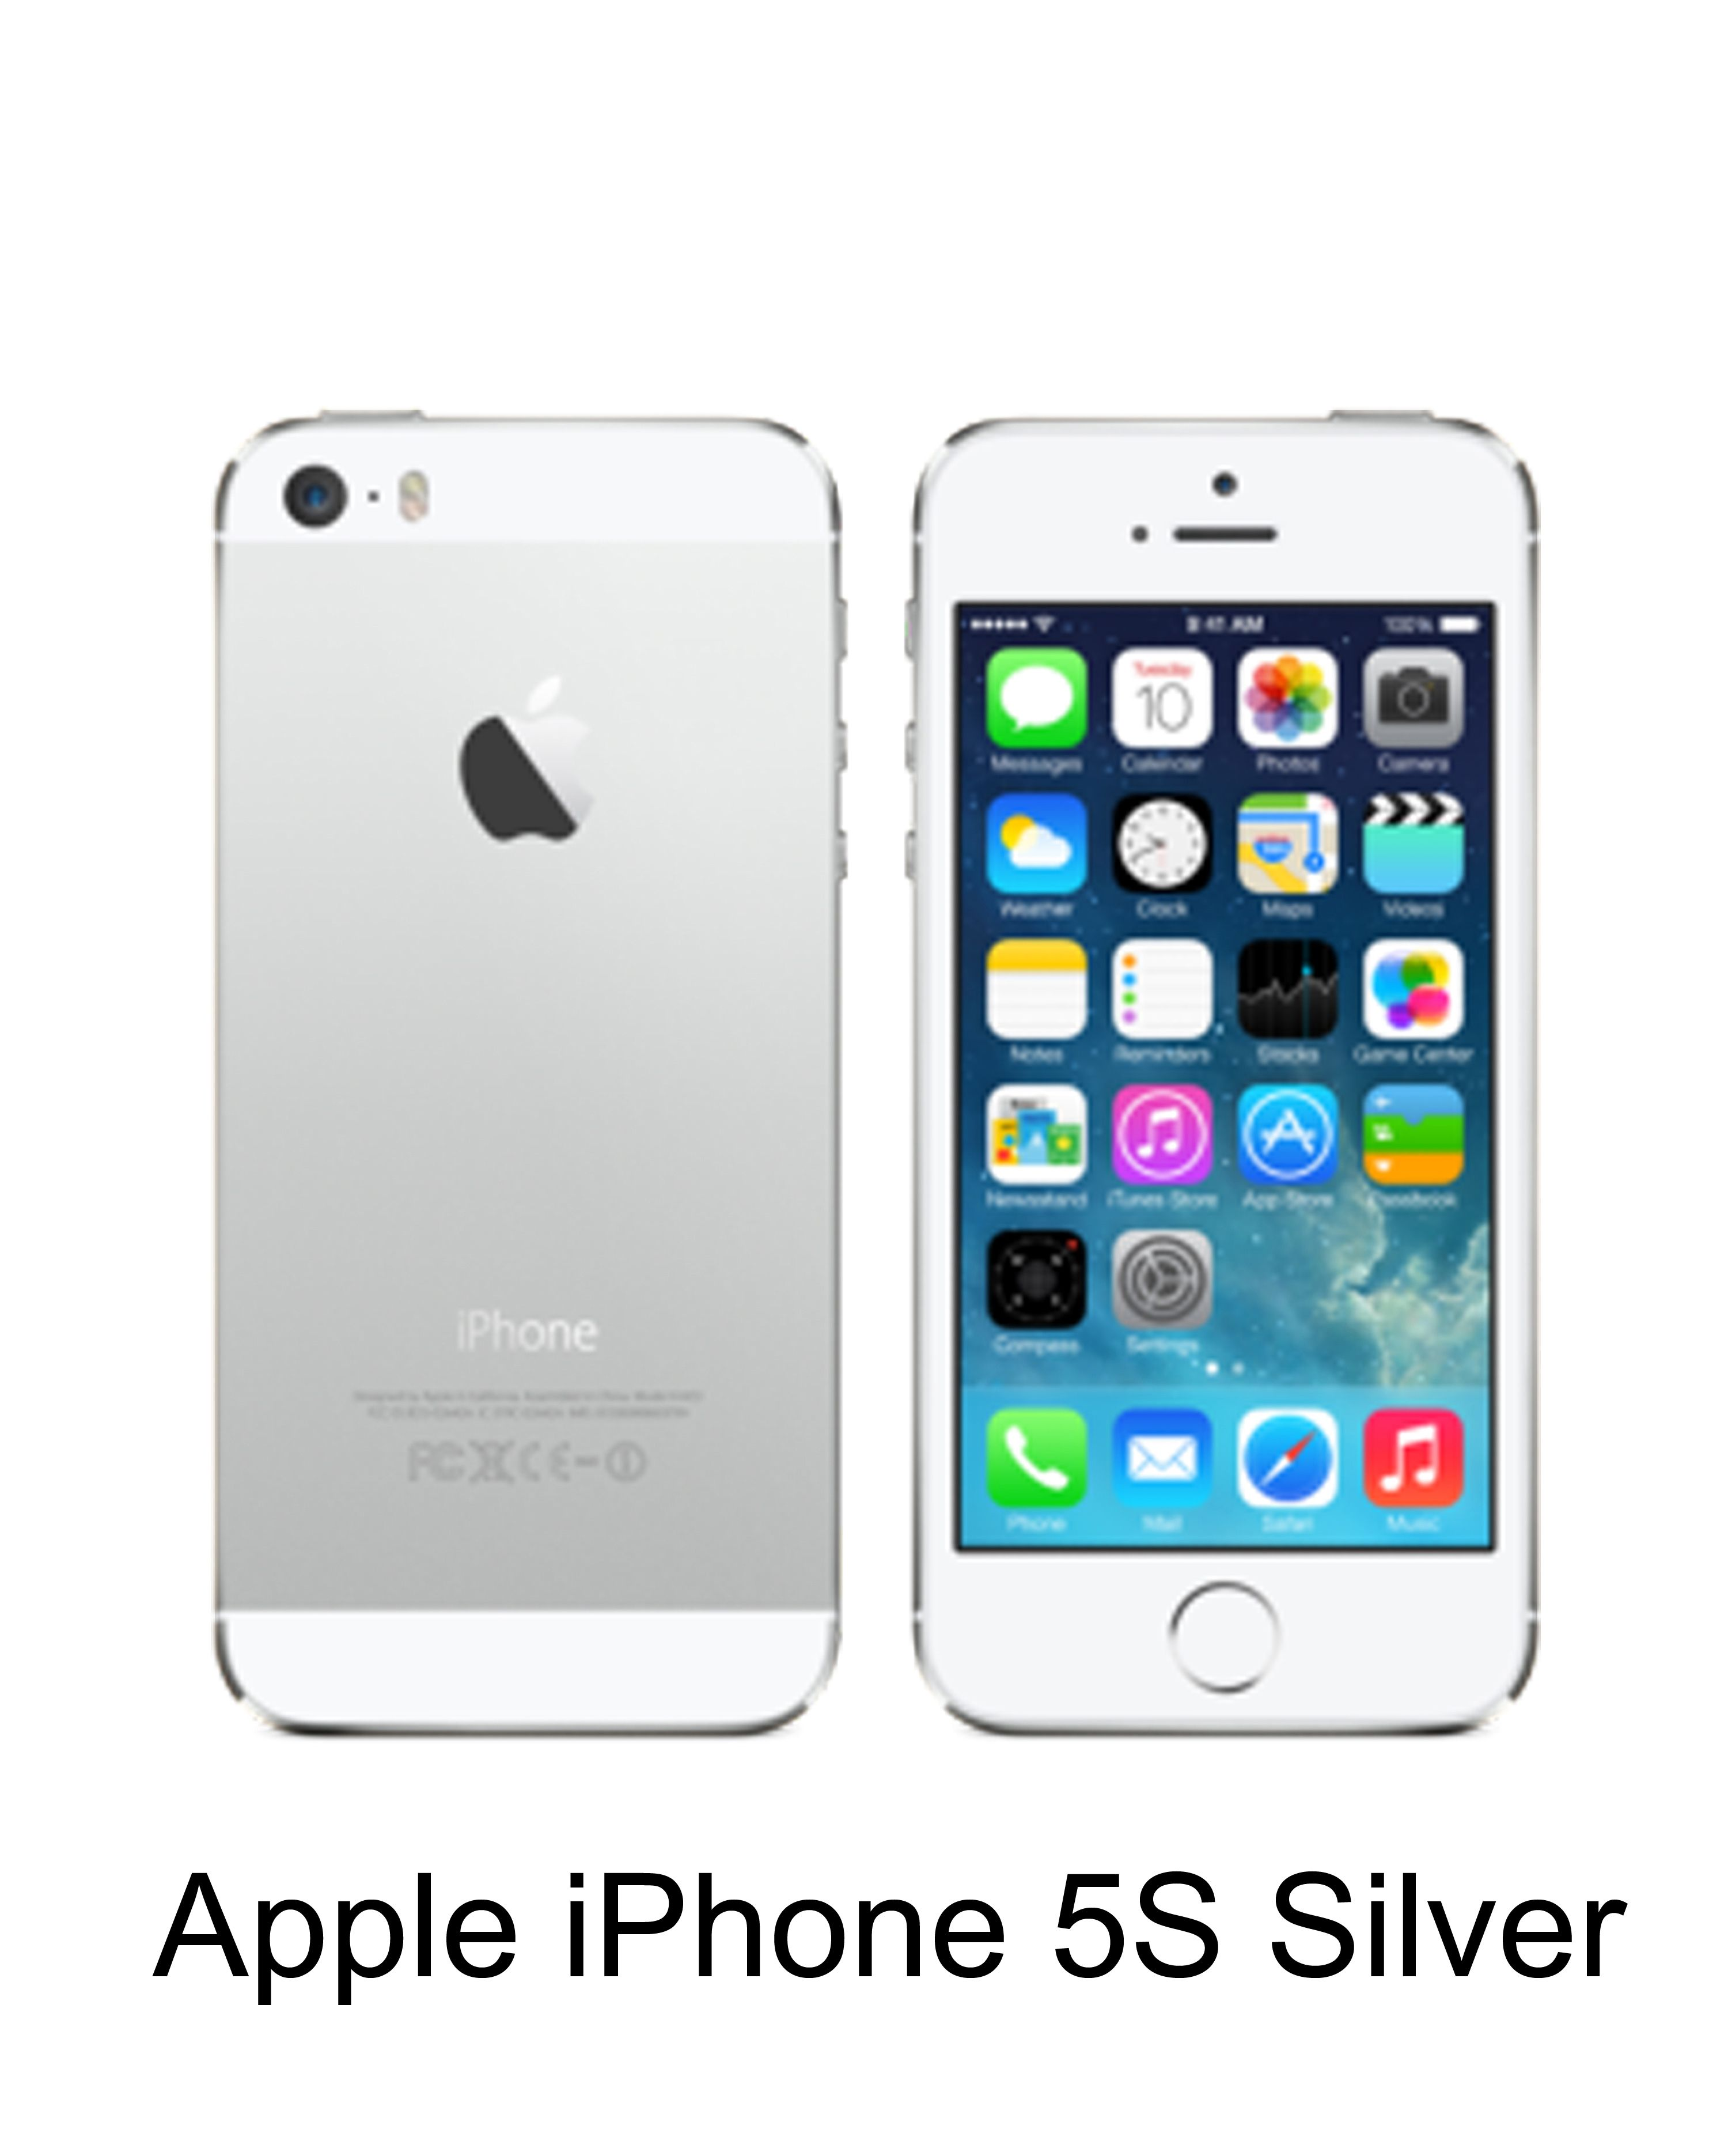 Iphone Se 16go Reconditionné Apple Offers Best Price On Apple Iphone 5s Silver In Bengaluru